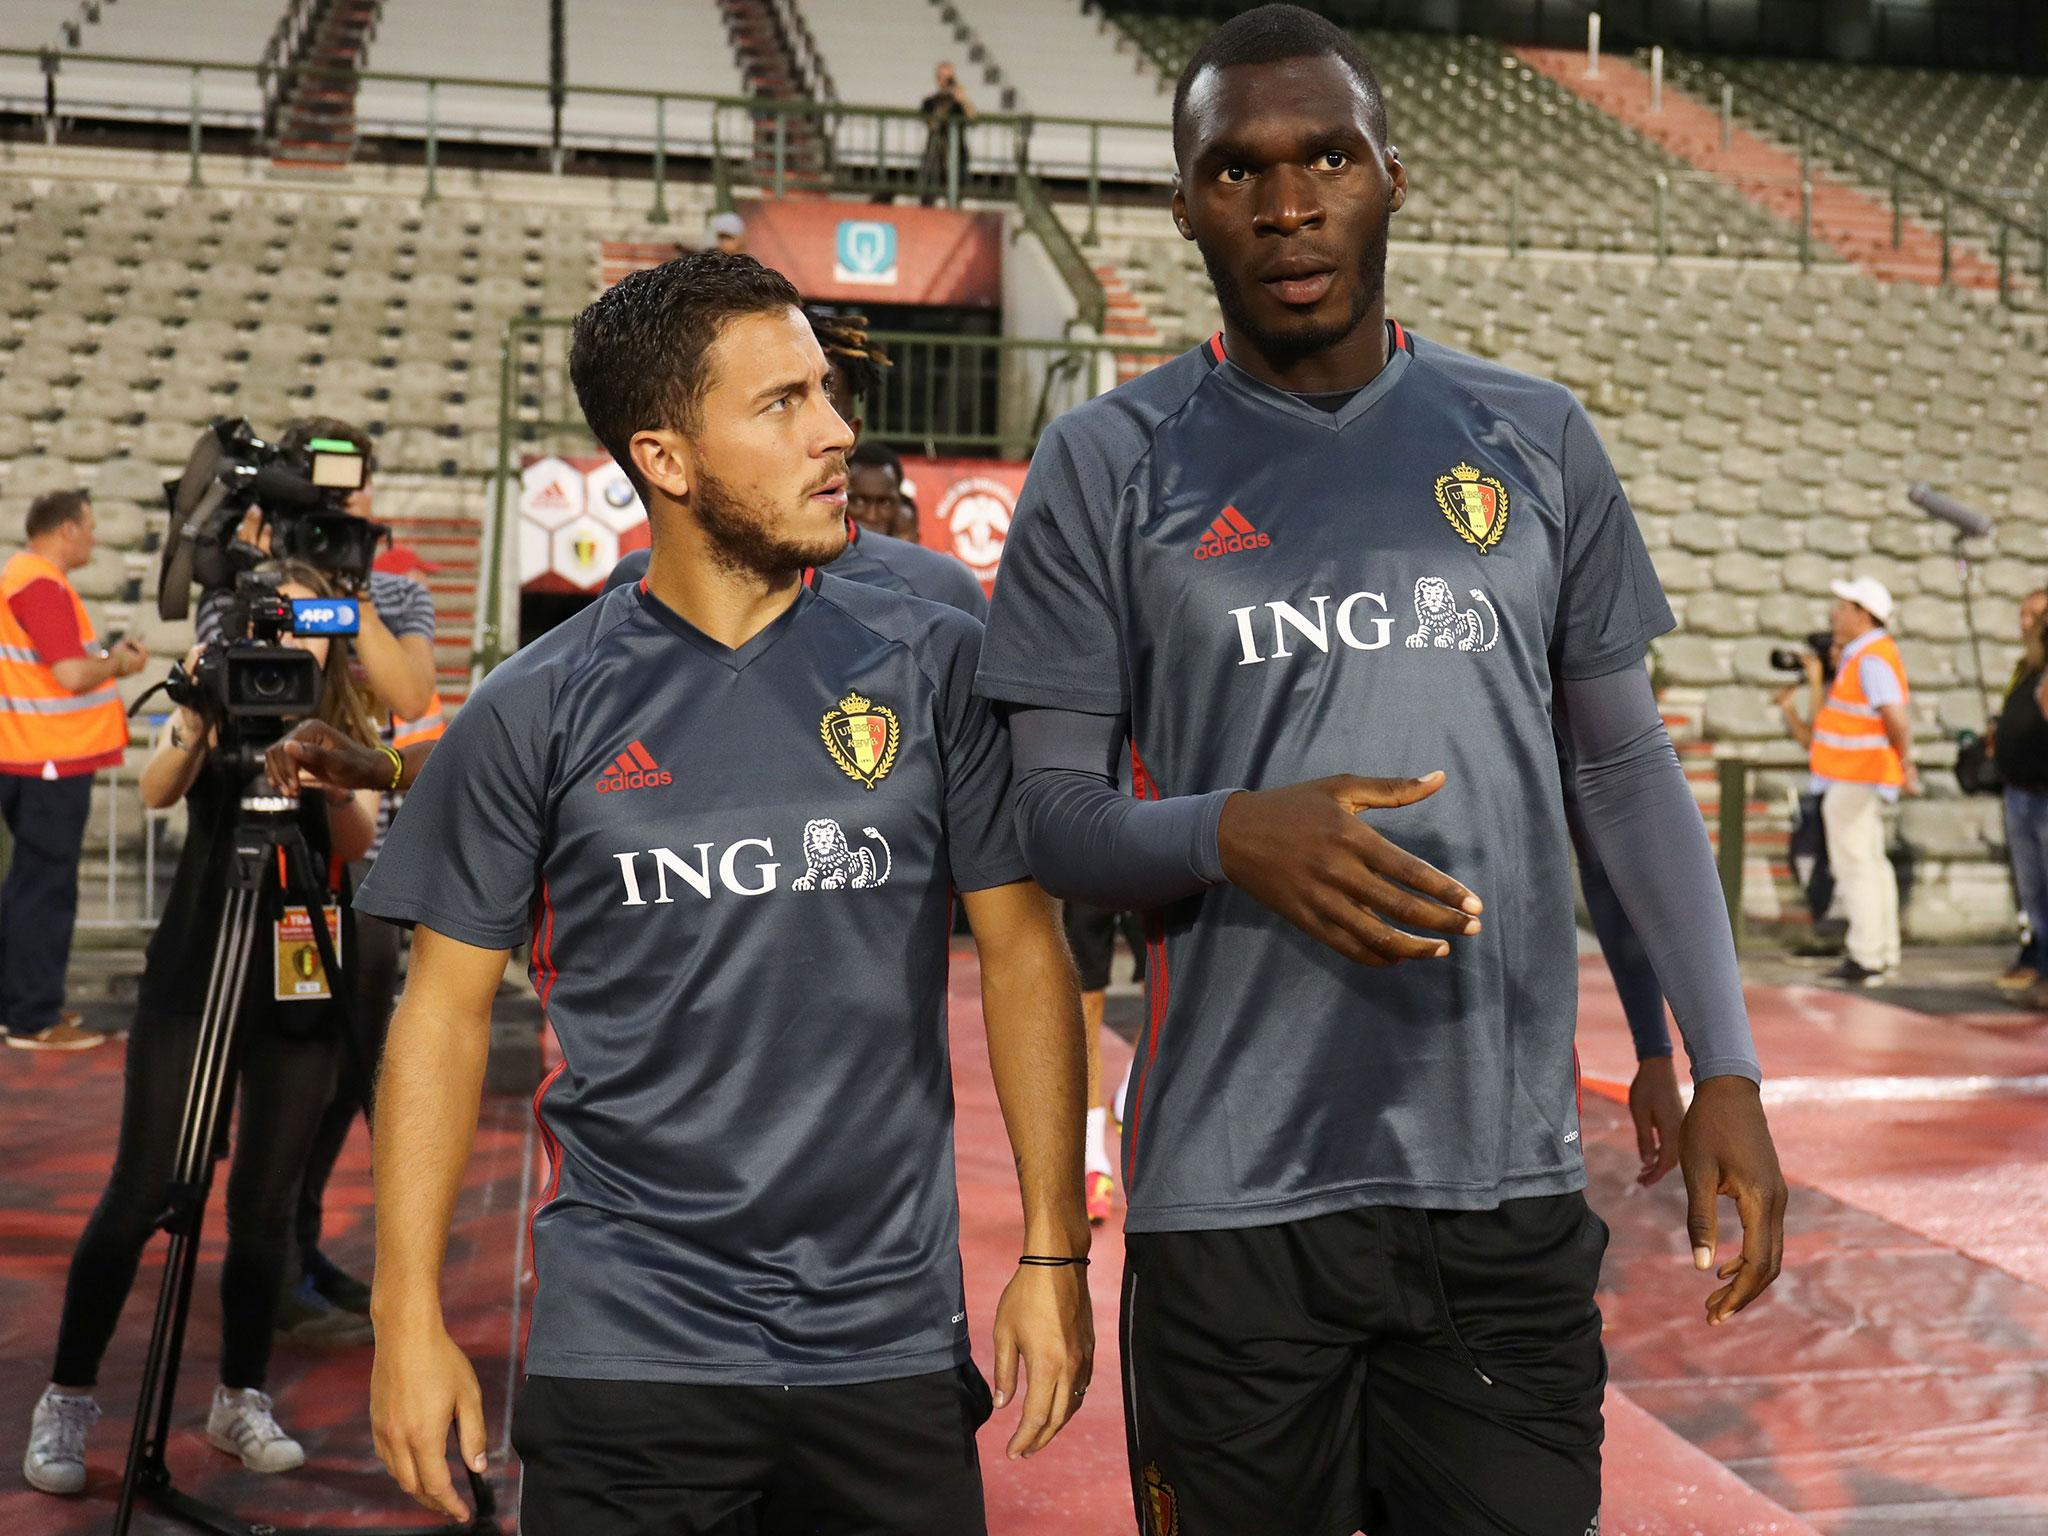 World Cup 2018: Christian Benteke tipping Belgium to win it - even if he's not in the squad to see it